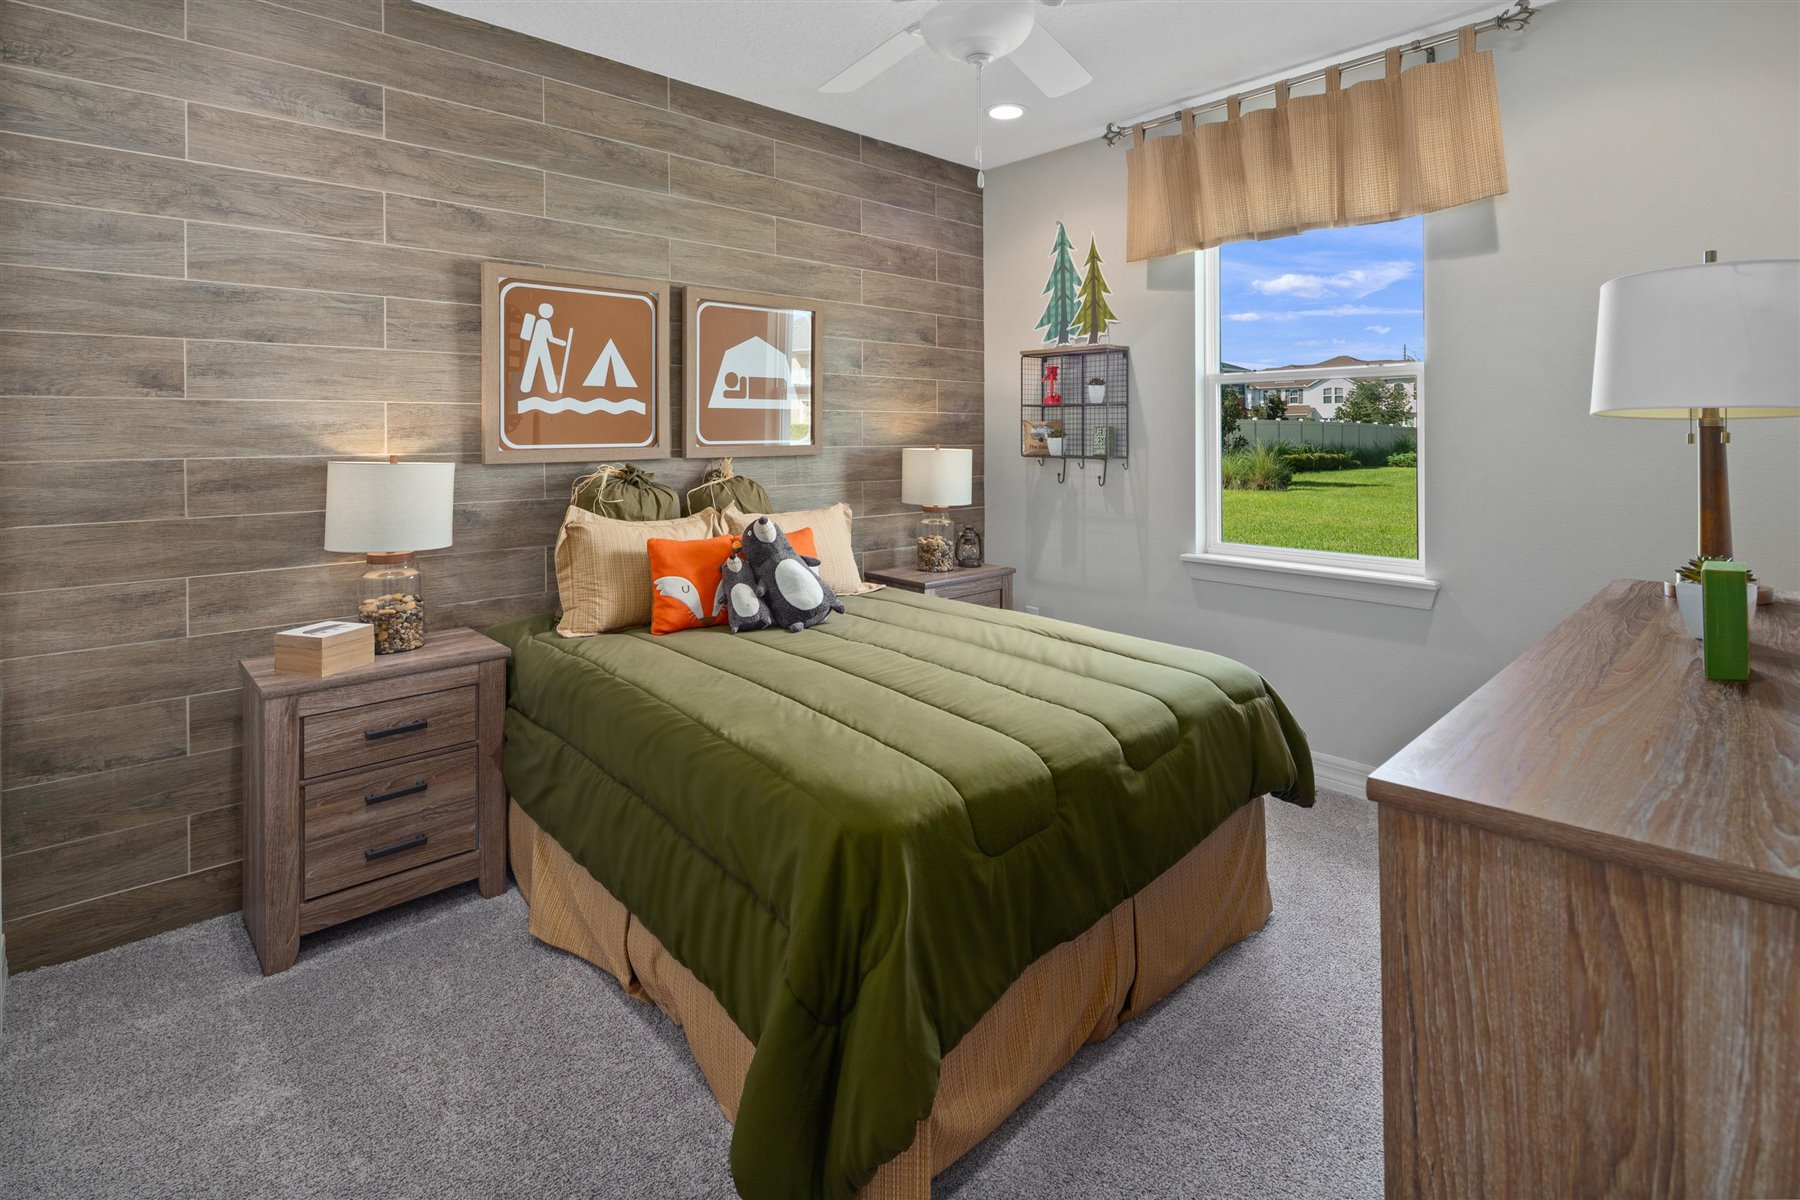 Dominica Plan Bedroom at Tapestry in Kissimmee Florida by Mattamy Homes